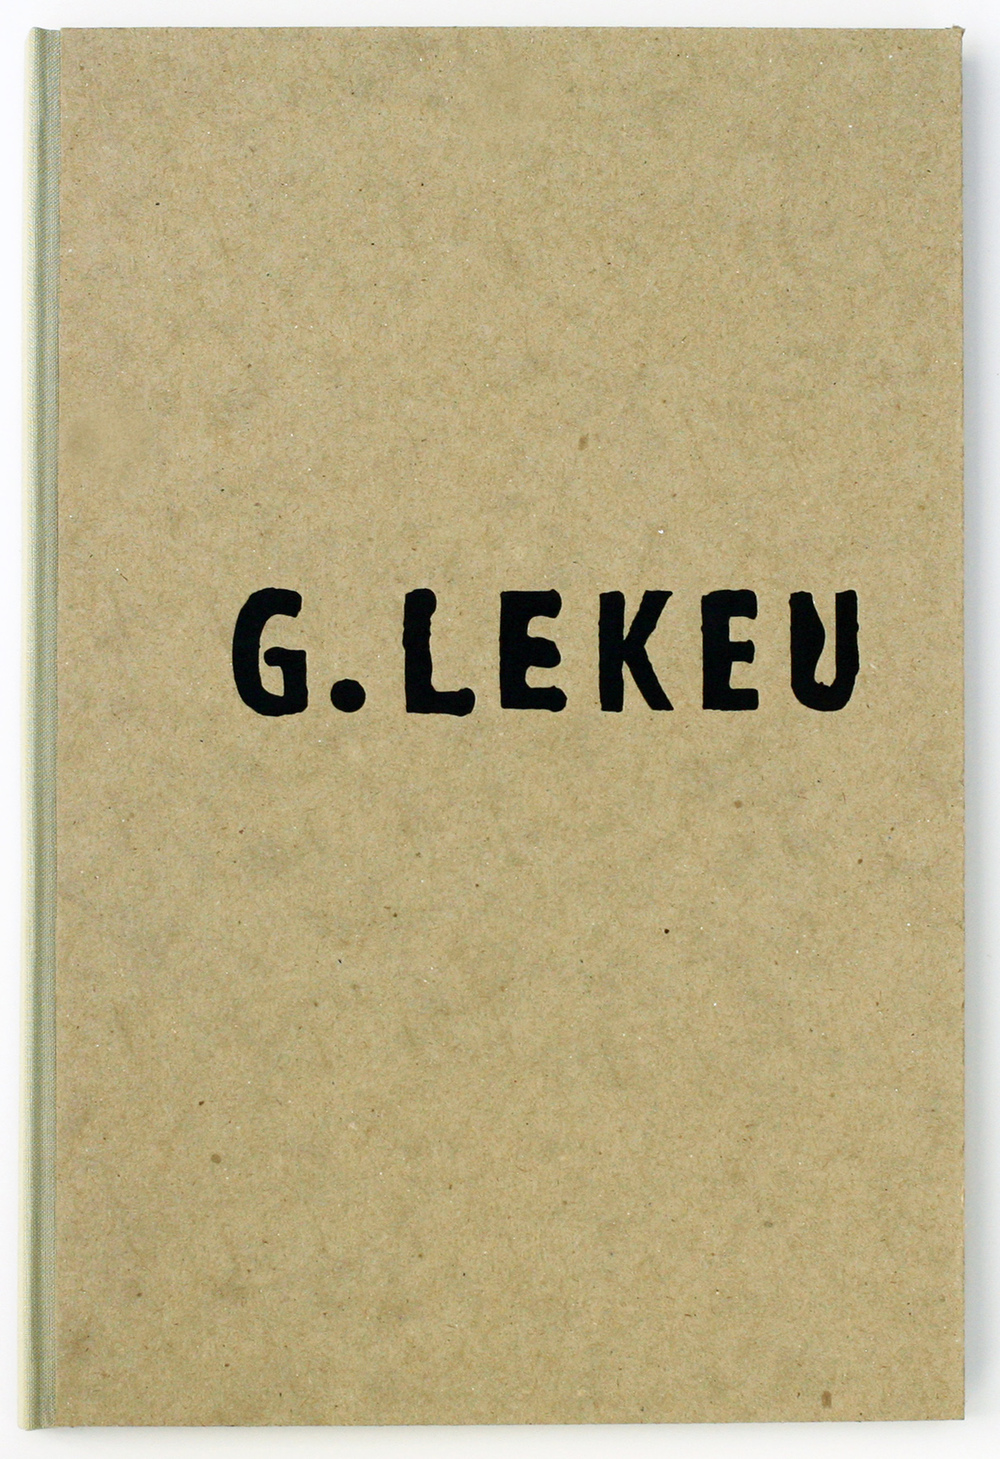 G. Lekeu, edition of ten, 2014 (in 4 private collections, including the Achenbach Foundation)